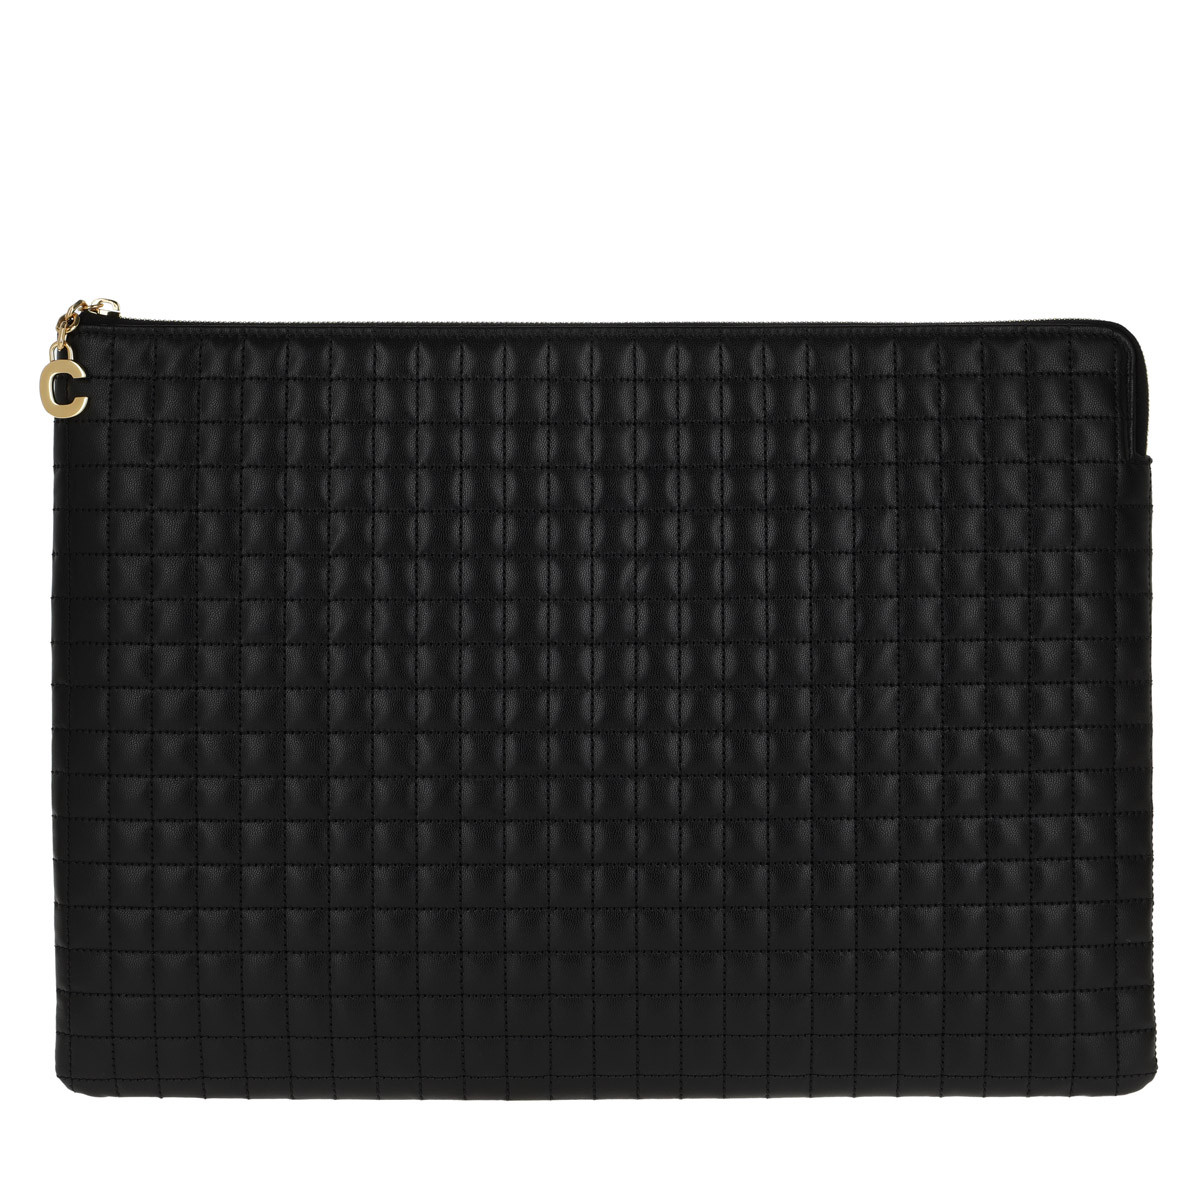 Celine Clutch - C Charm Large Pouch Quilted Leather Black - in schwarz - für Damen